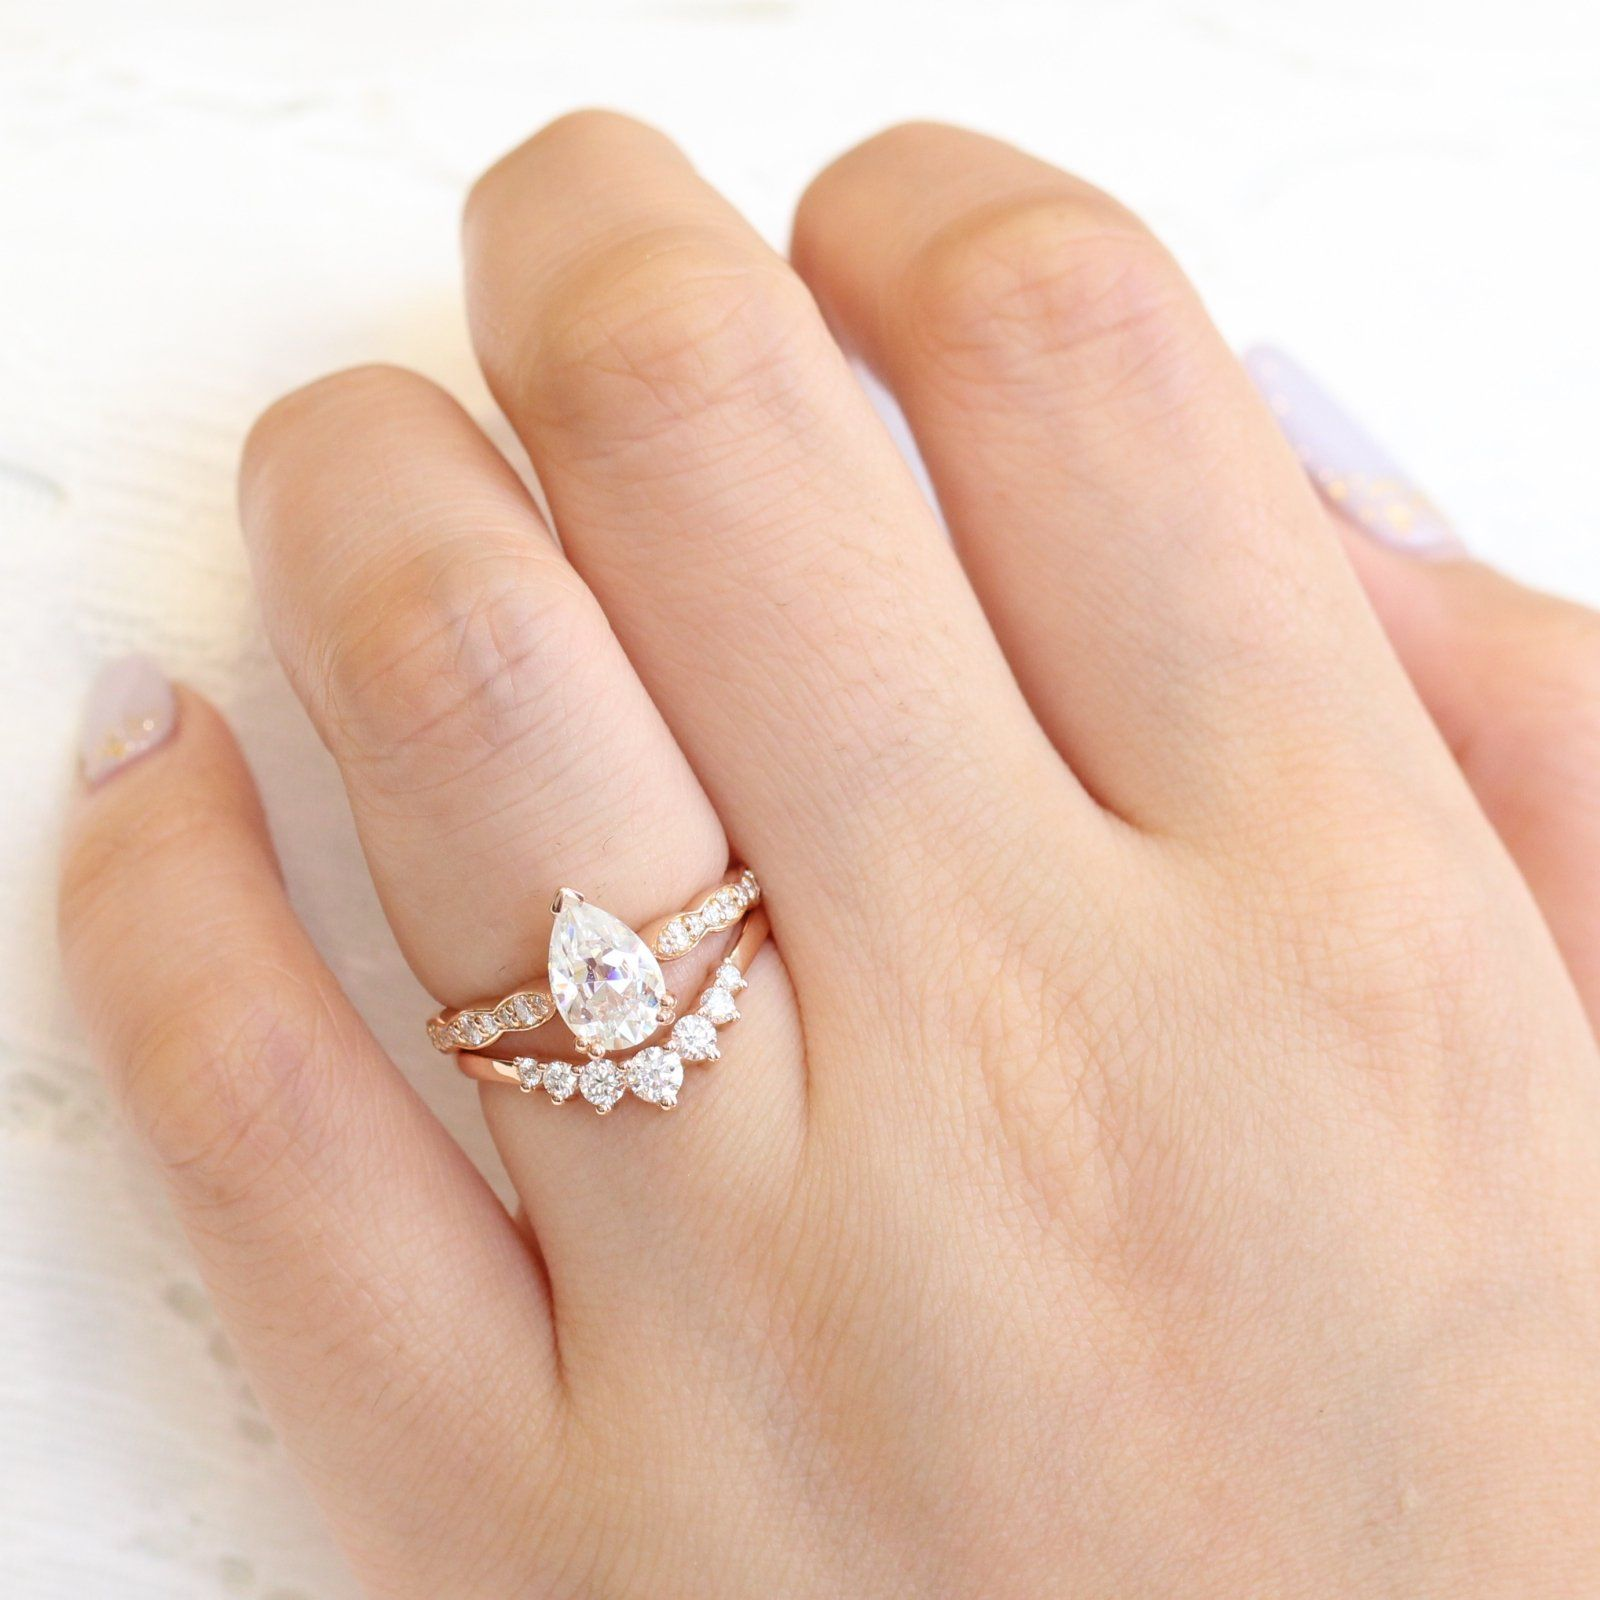 Grace solitaire bridal set in scalloped band w moissanite and